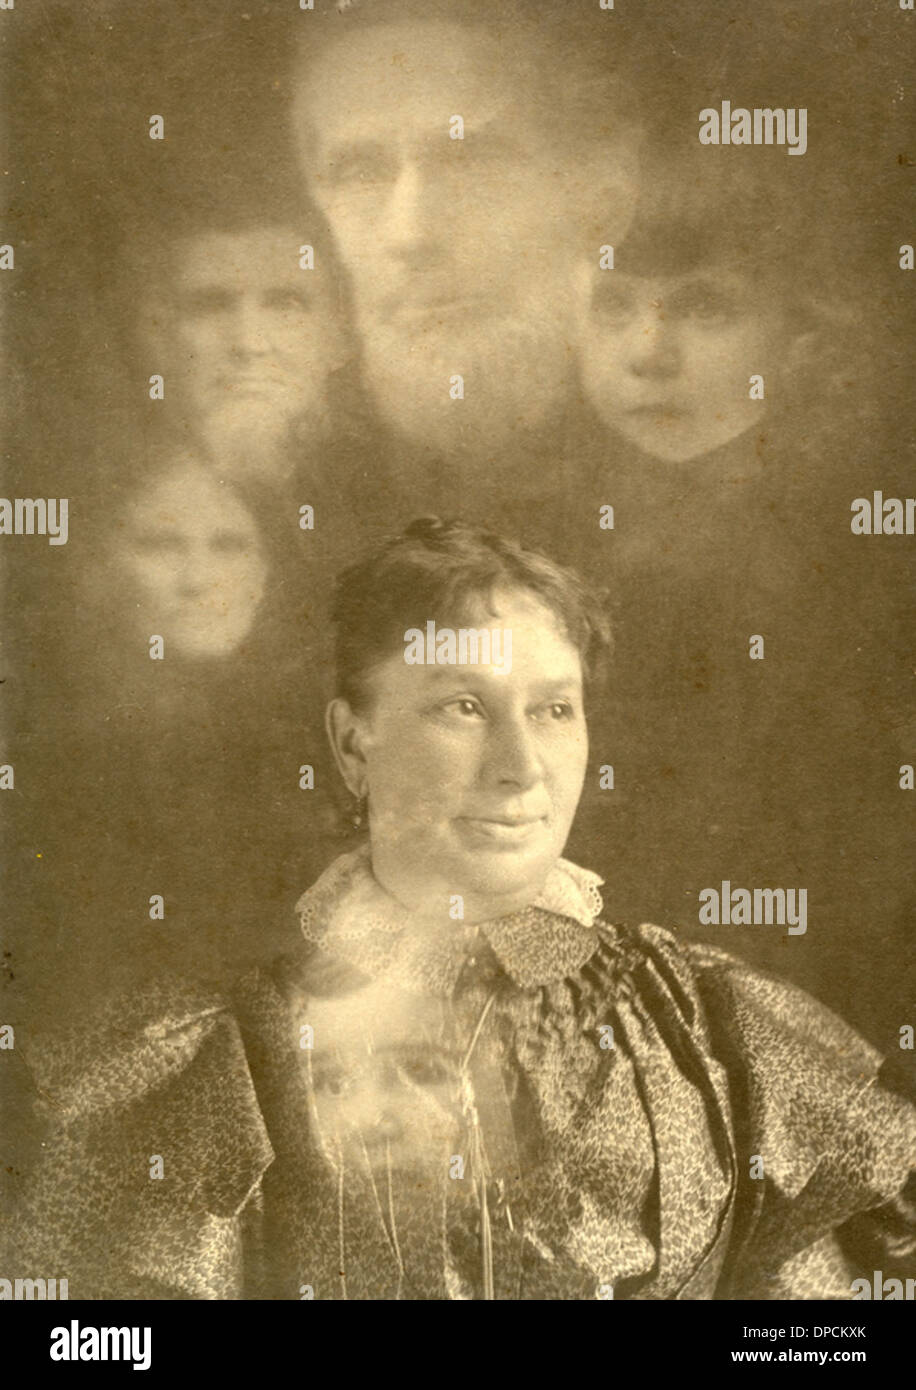 Koreshan Annie Grace Glosson Ordway (later Graves) in Chicago, Illinois - Stock Image